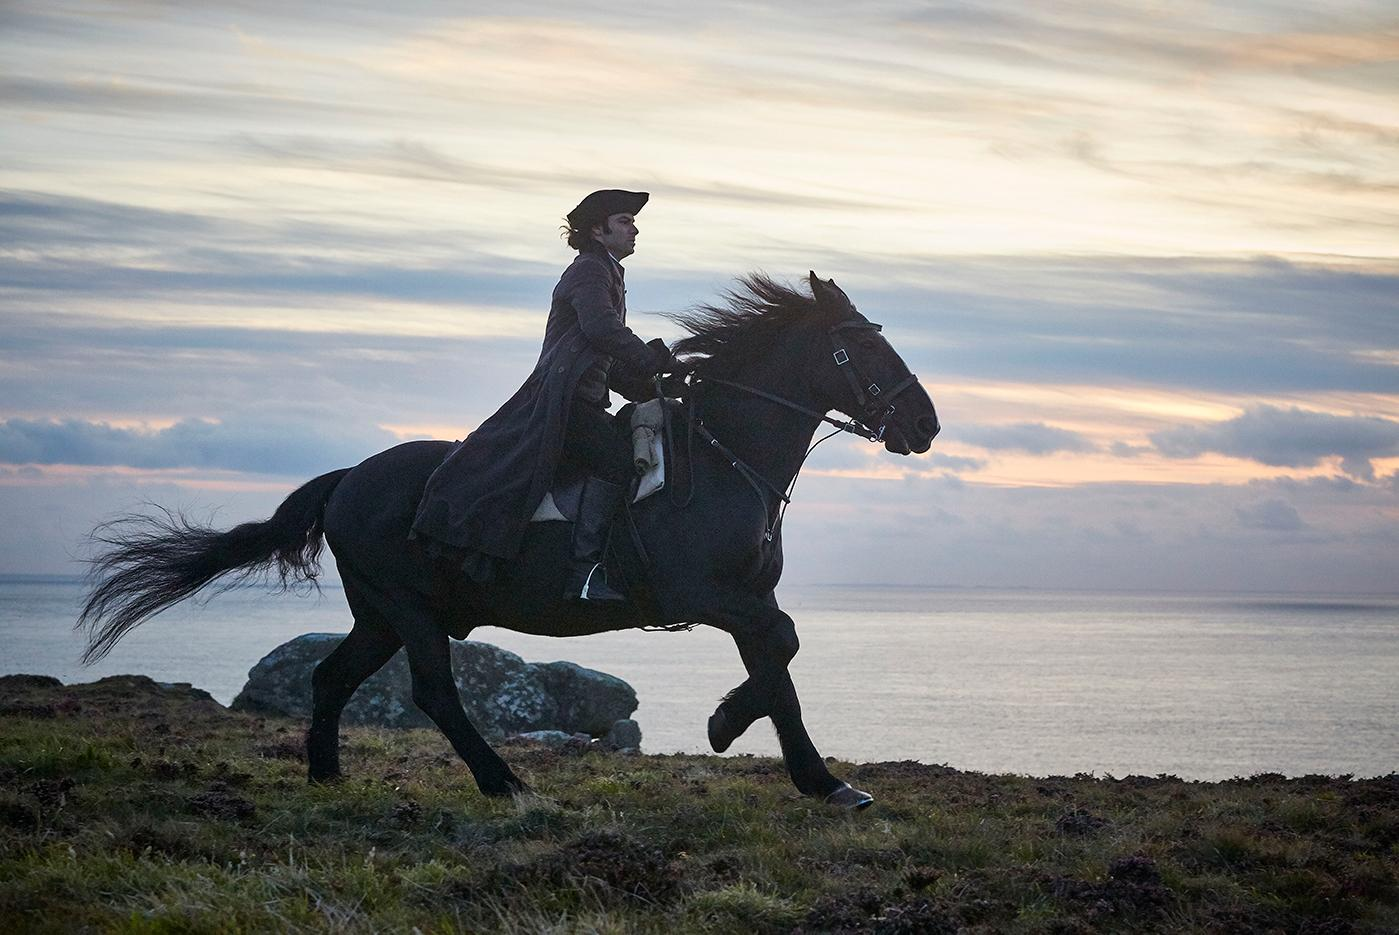 Aidan Turner as Ross Poldark. Photo: Mammoth Screen for BBC and MASTERPIECE